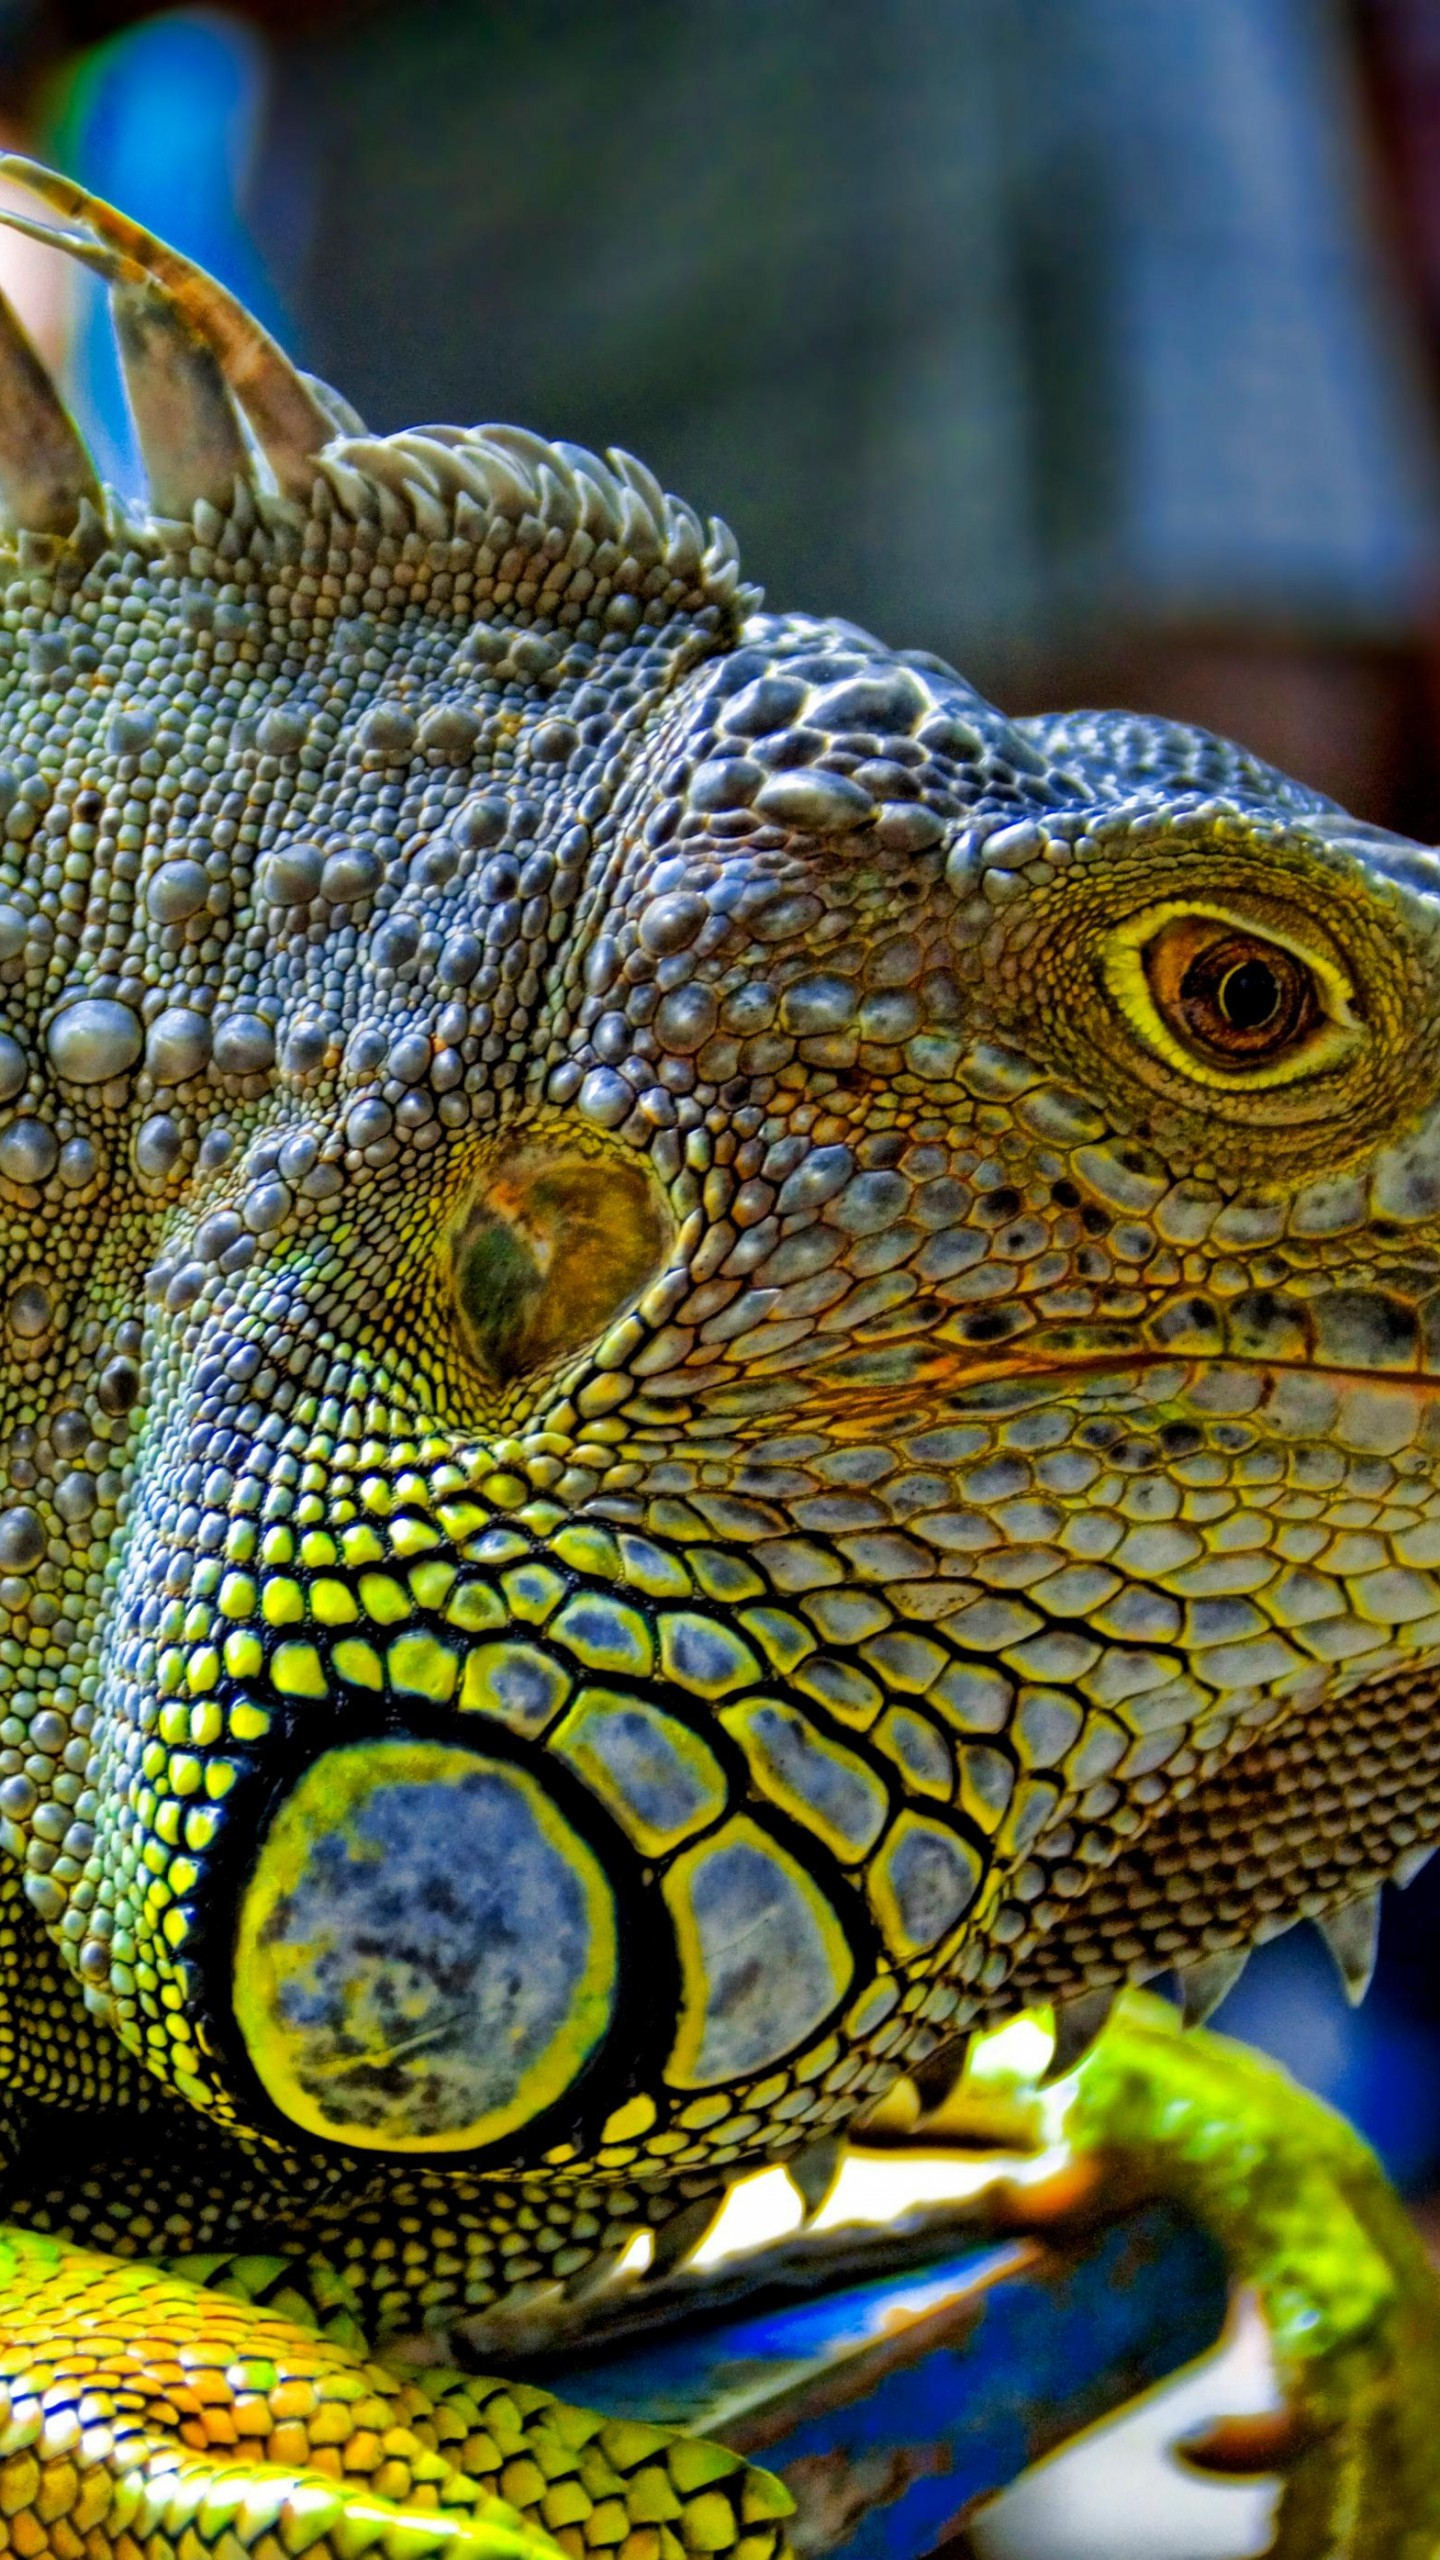 Flowers Hd Wallpapers With Quotes Wallpaper Green Iguana Reptiles Nature Lizard Animals